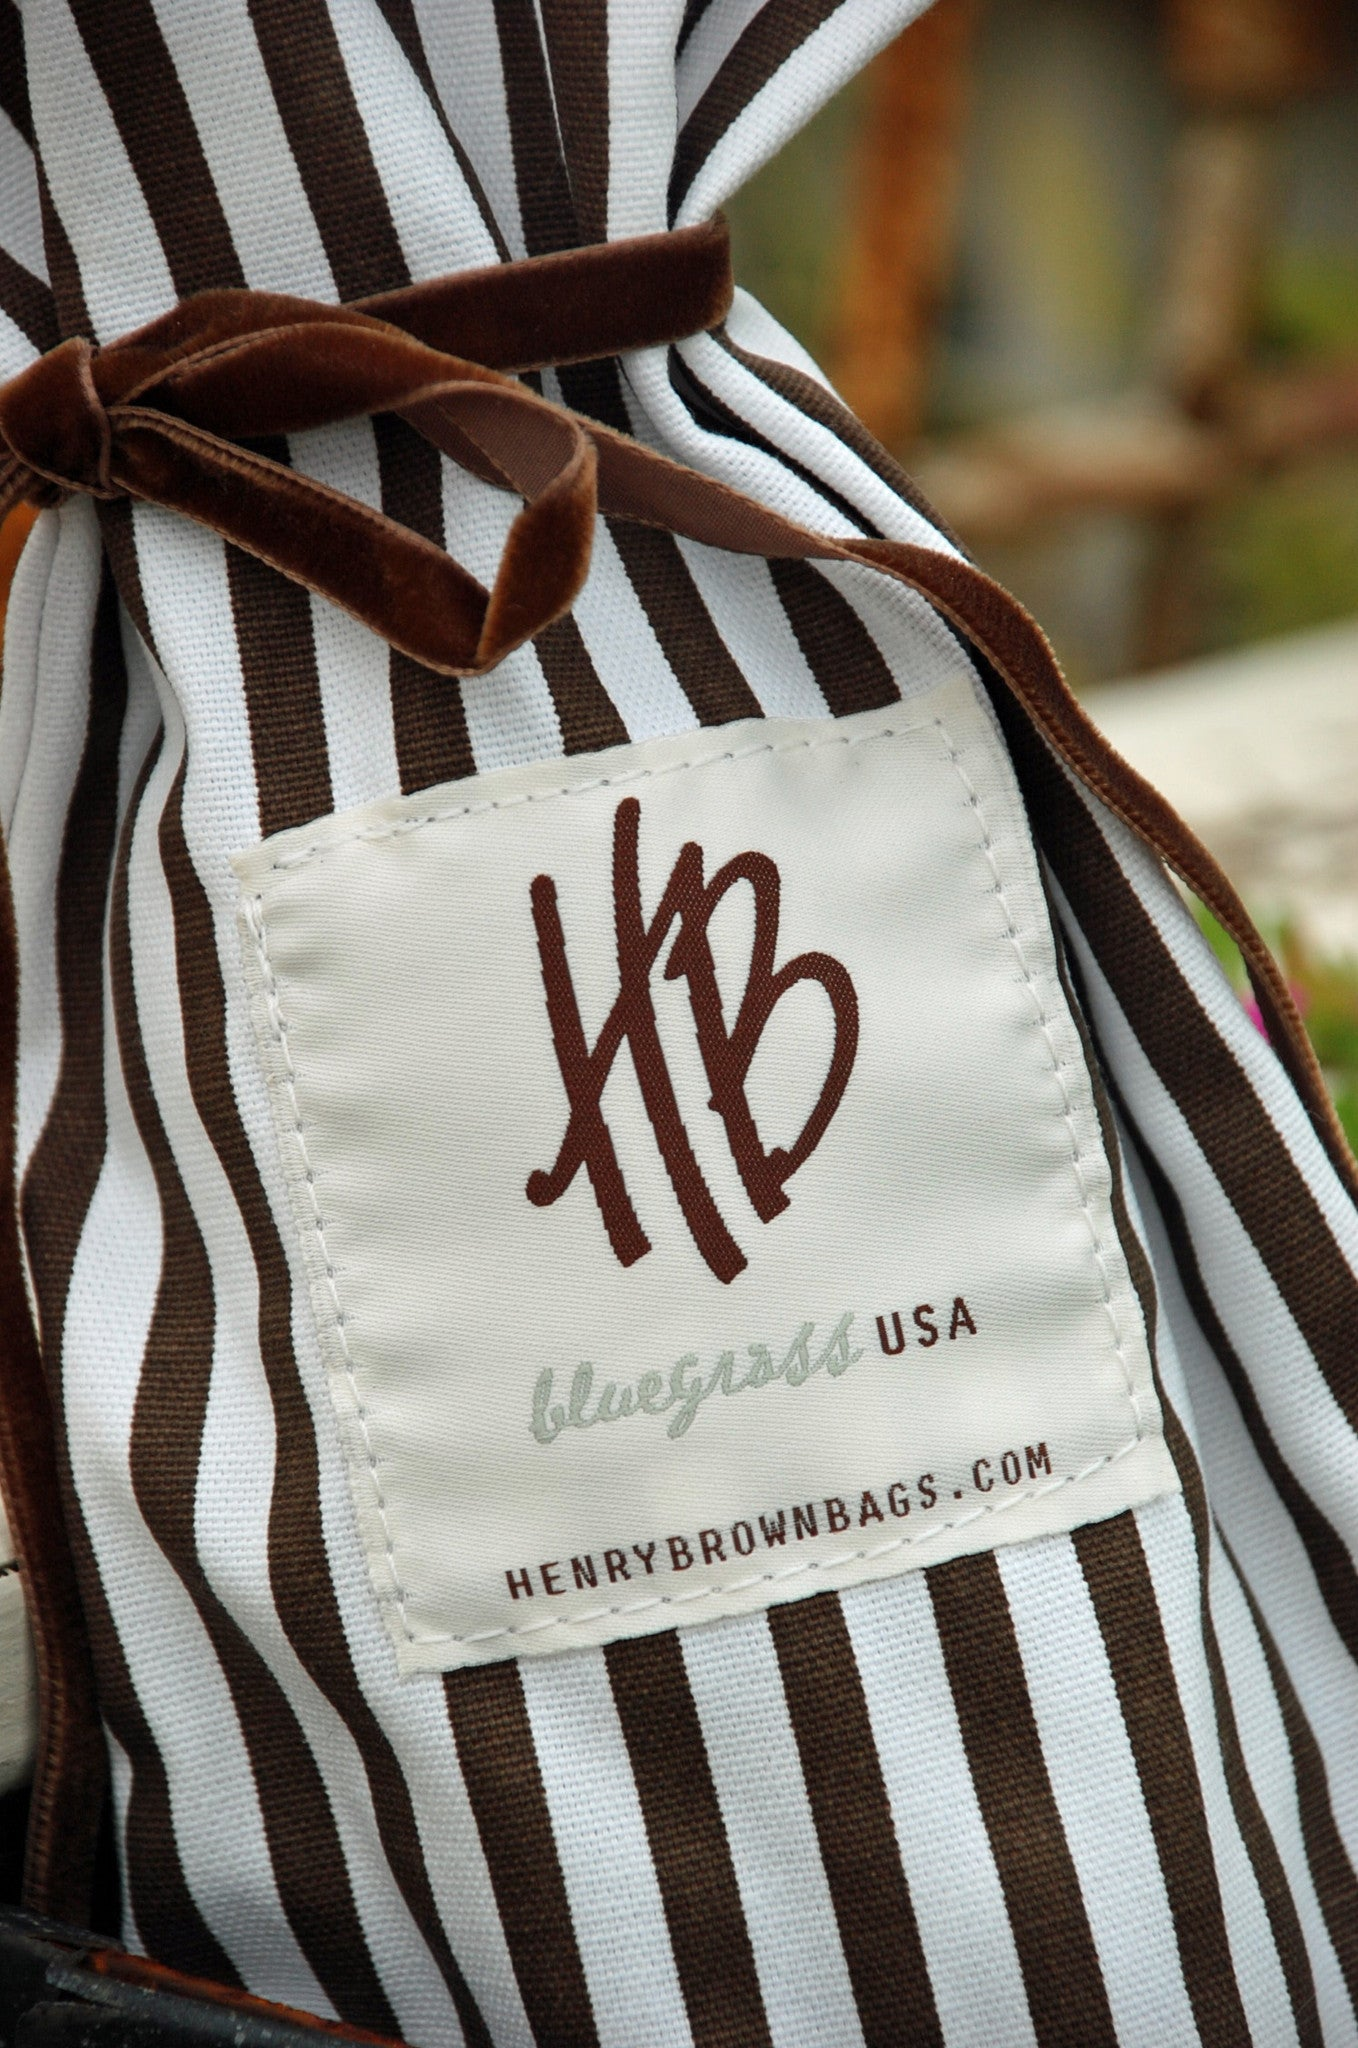 Henry Brown Wine Bag